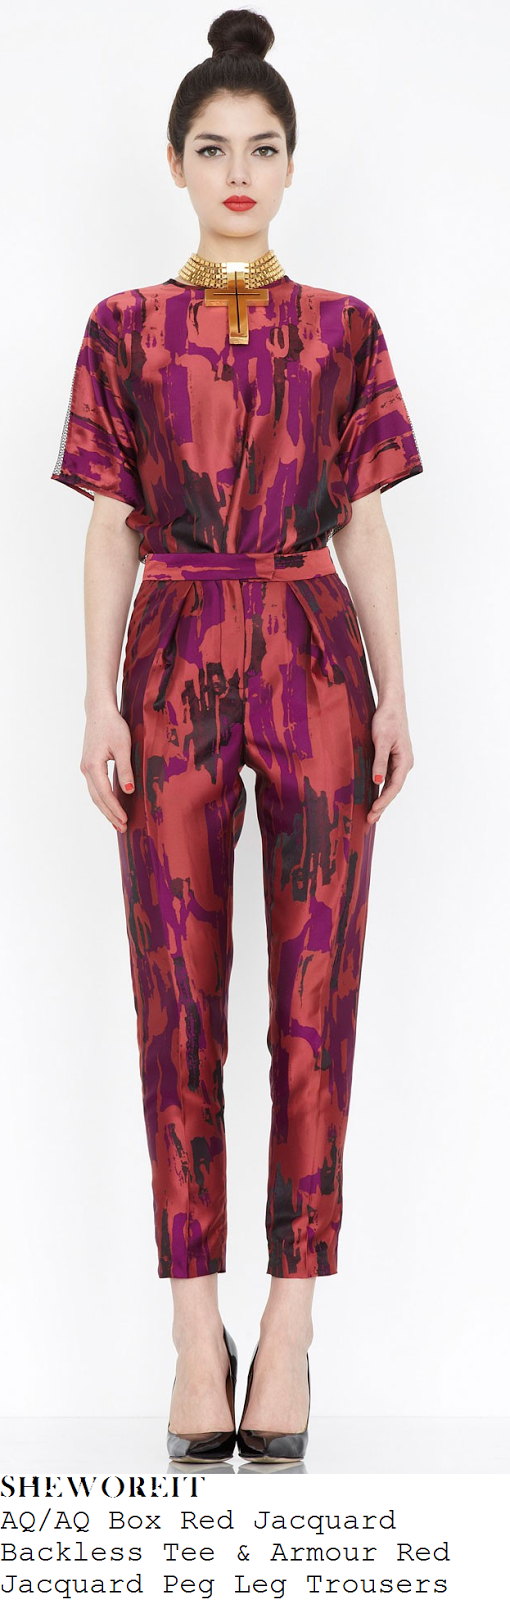 fearne-cotton-red-purple-and-black-paint-jacquard-short-sleeve-mesh-back-top-and-high-waisted-trousers